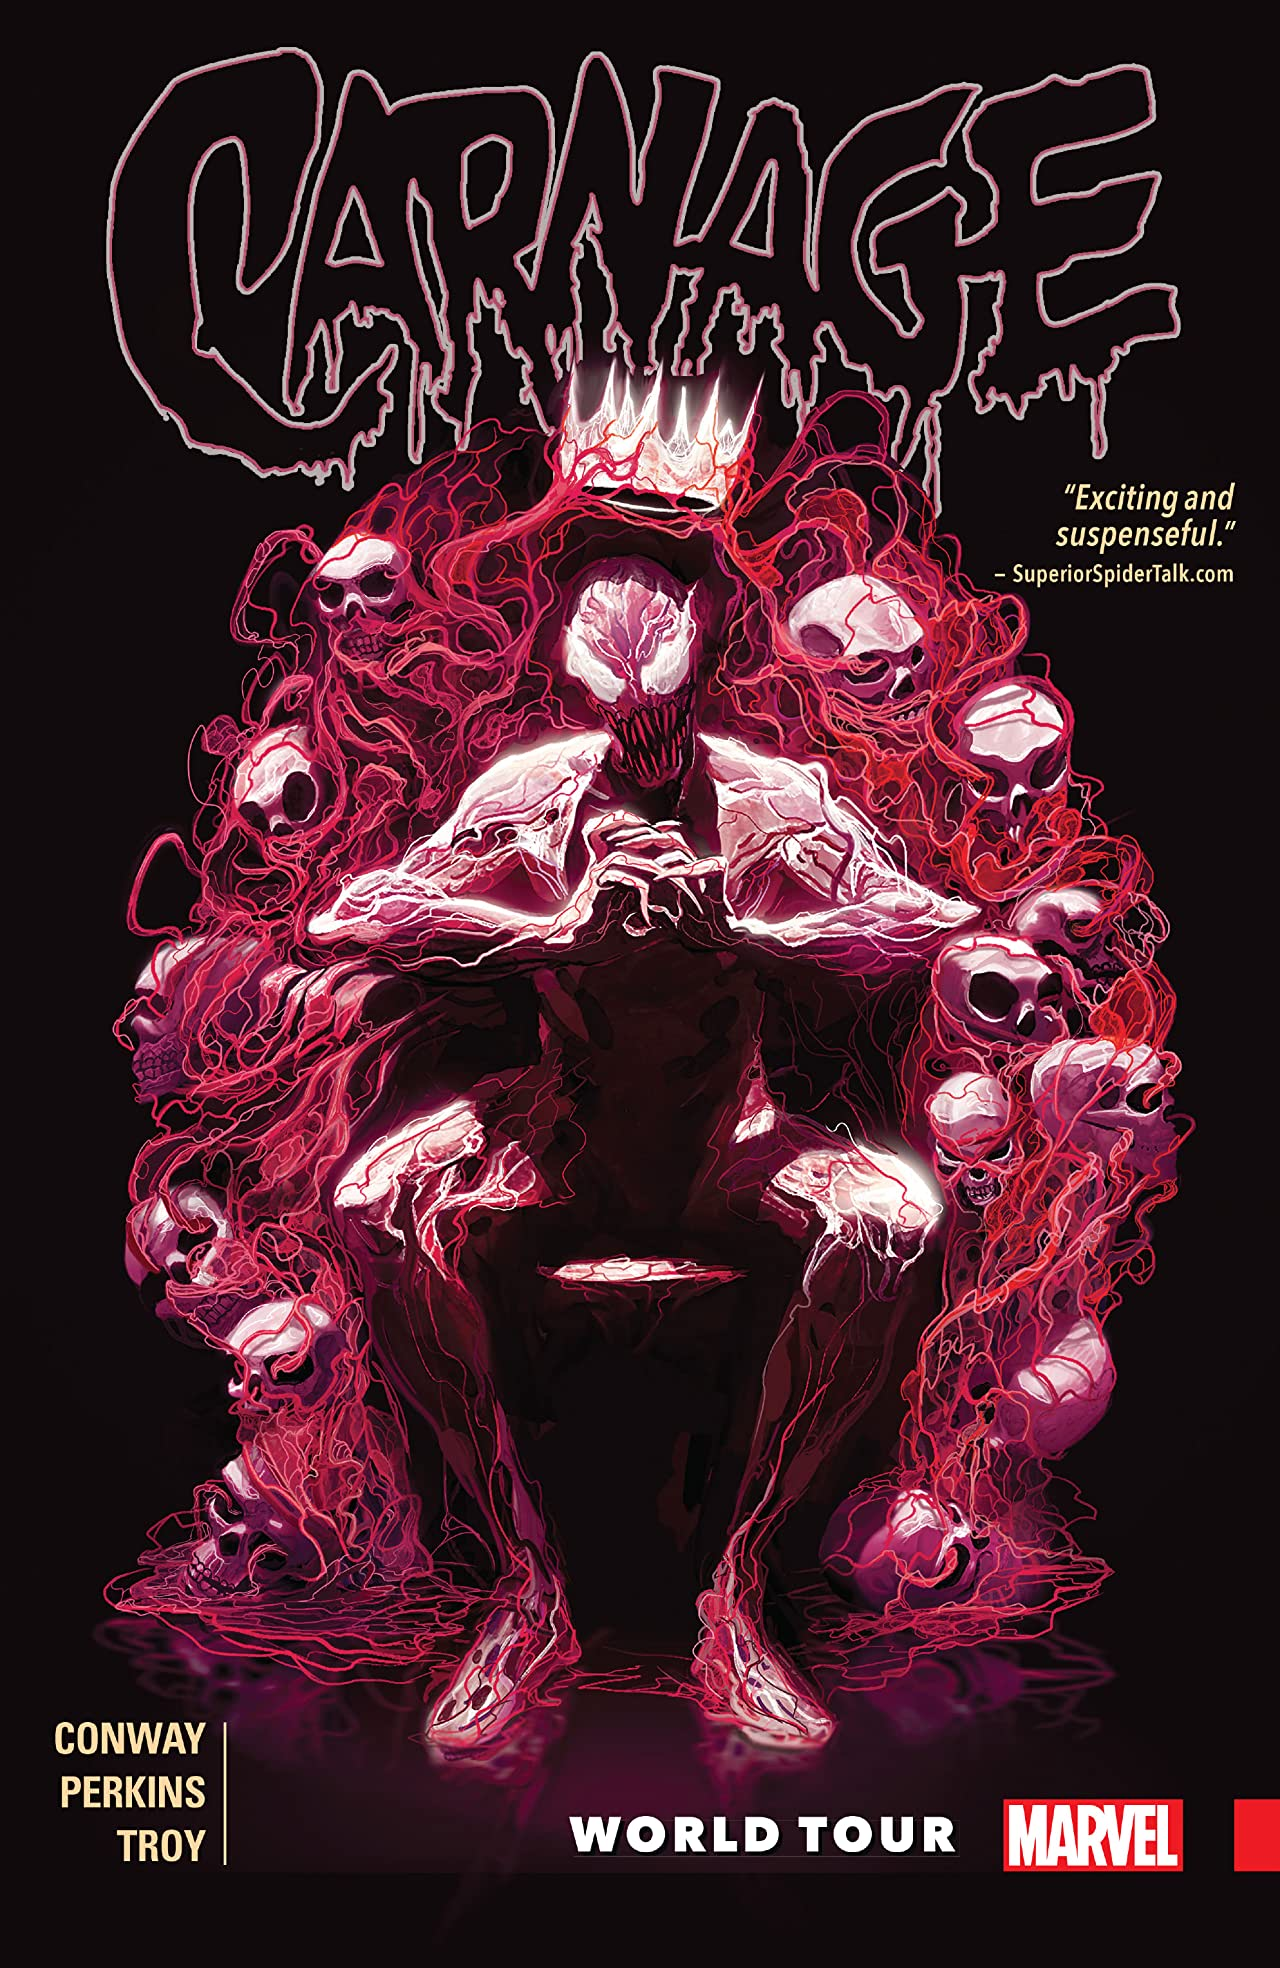 Carnage Vol. 2: World Tour